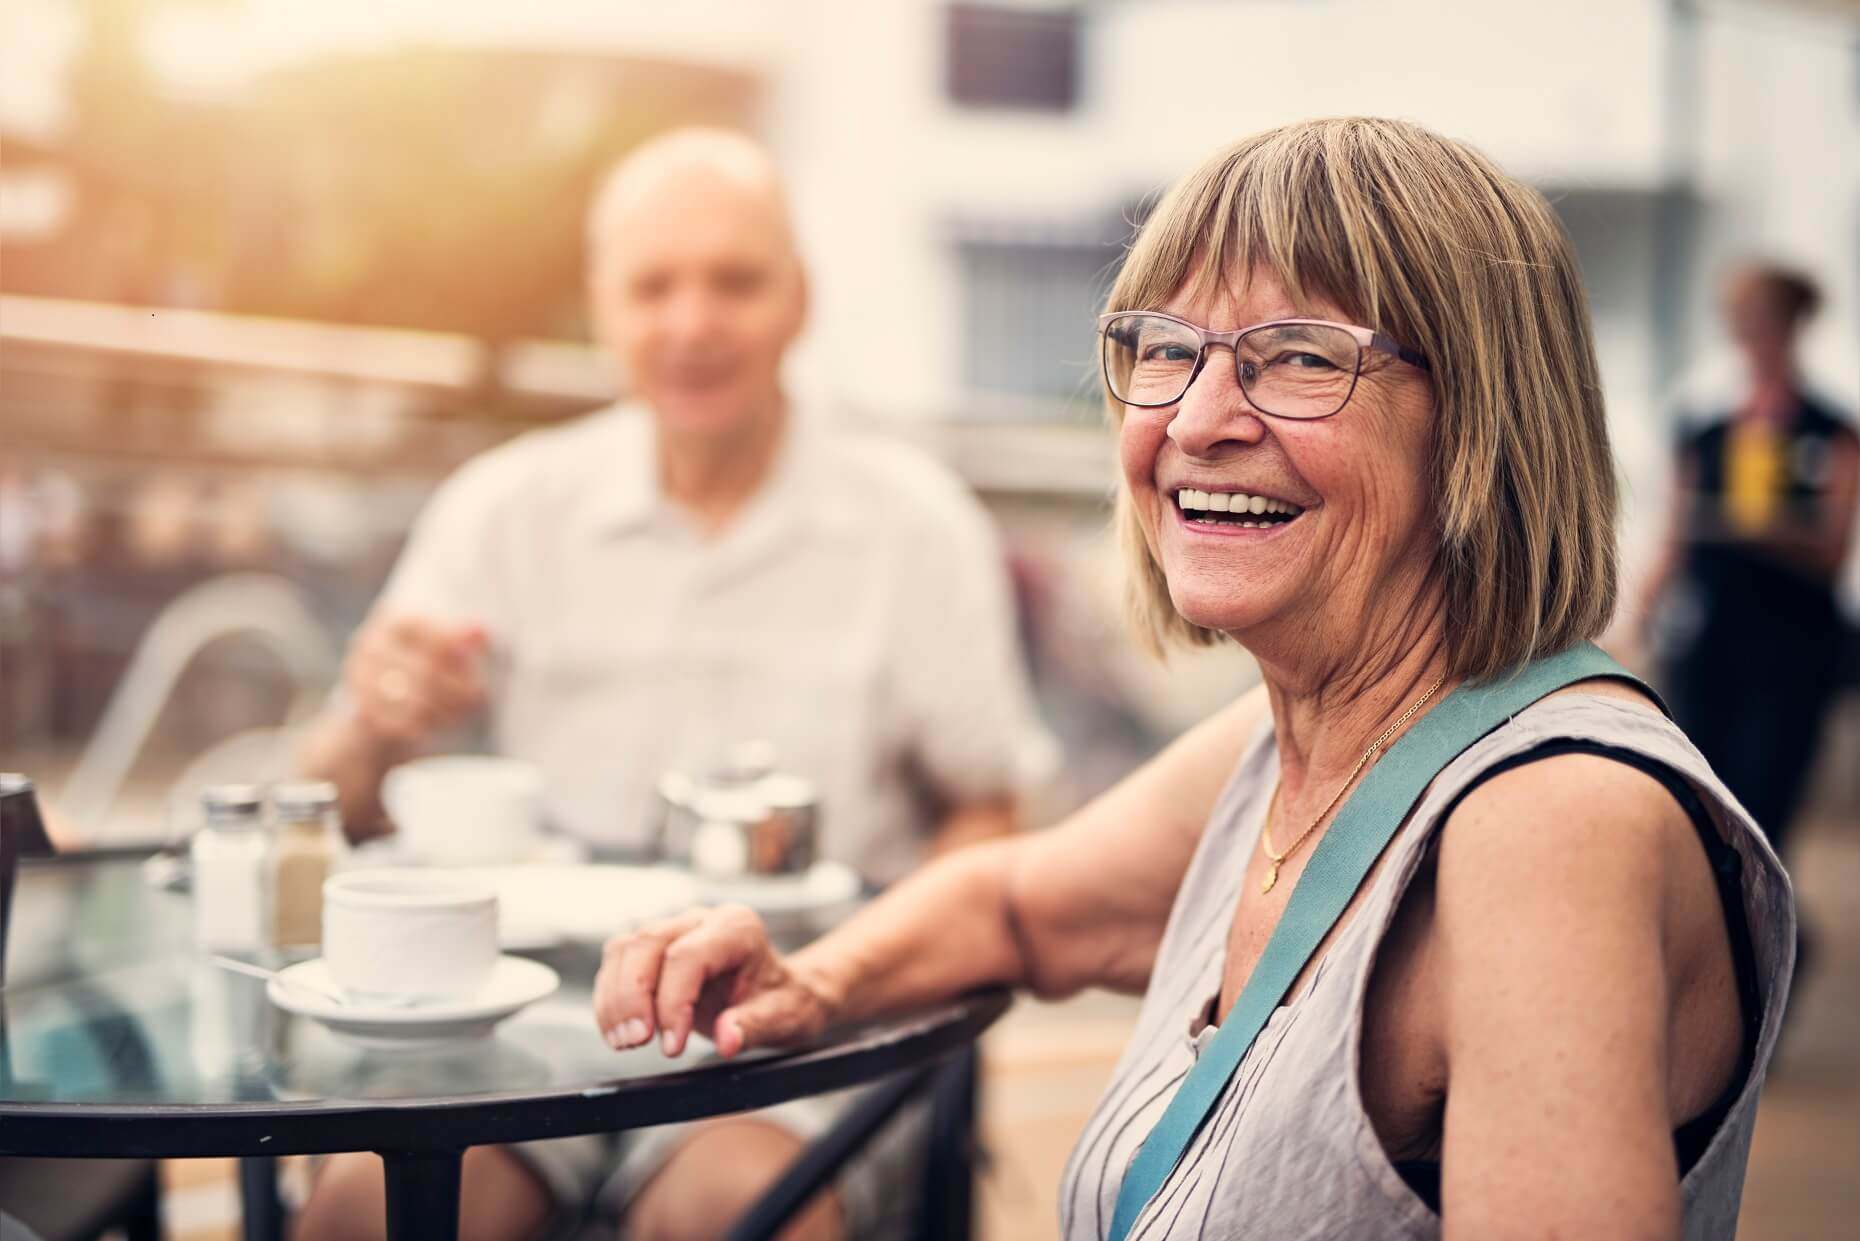 Elderly woman with glasses smiling, sitting a table with coffee cups and a man in the background